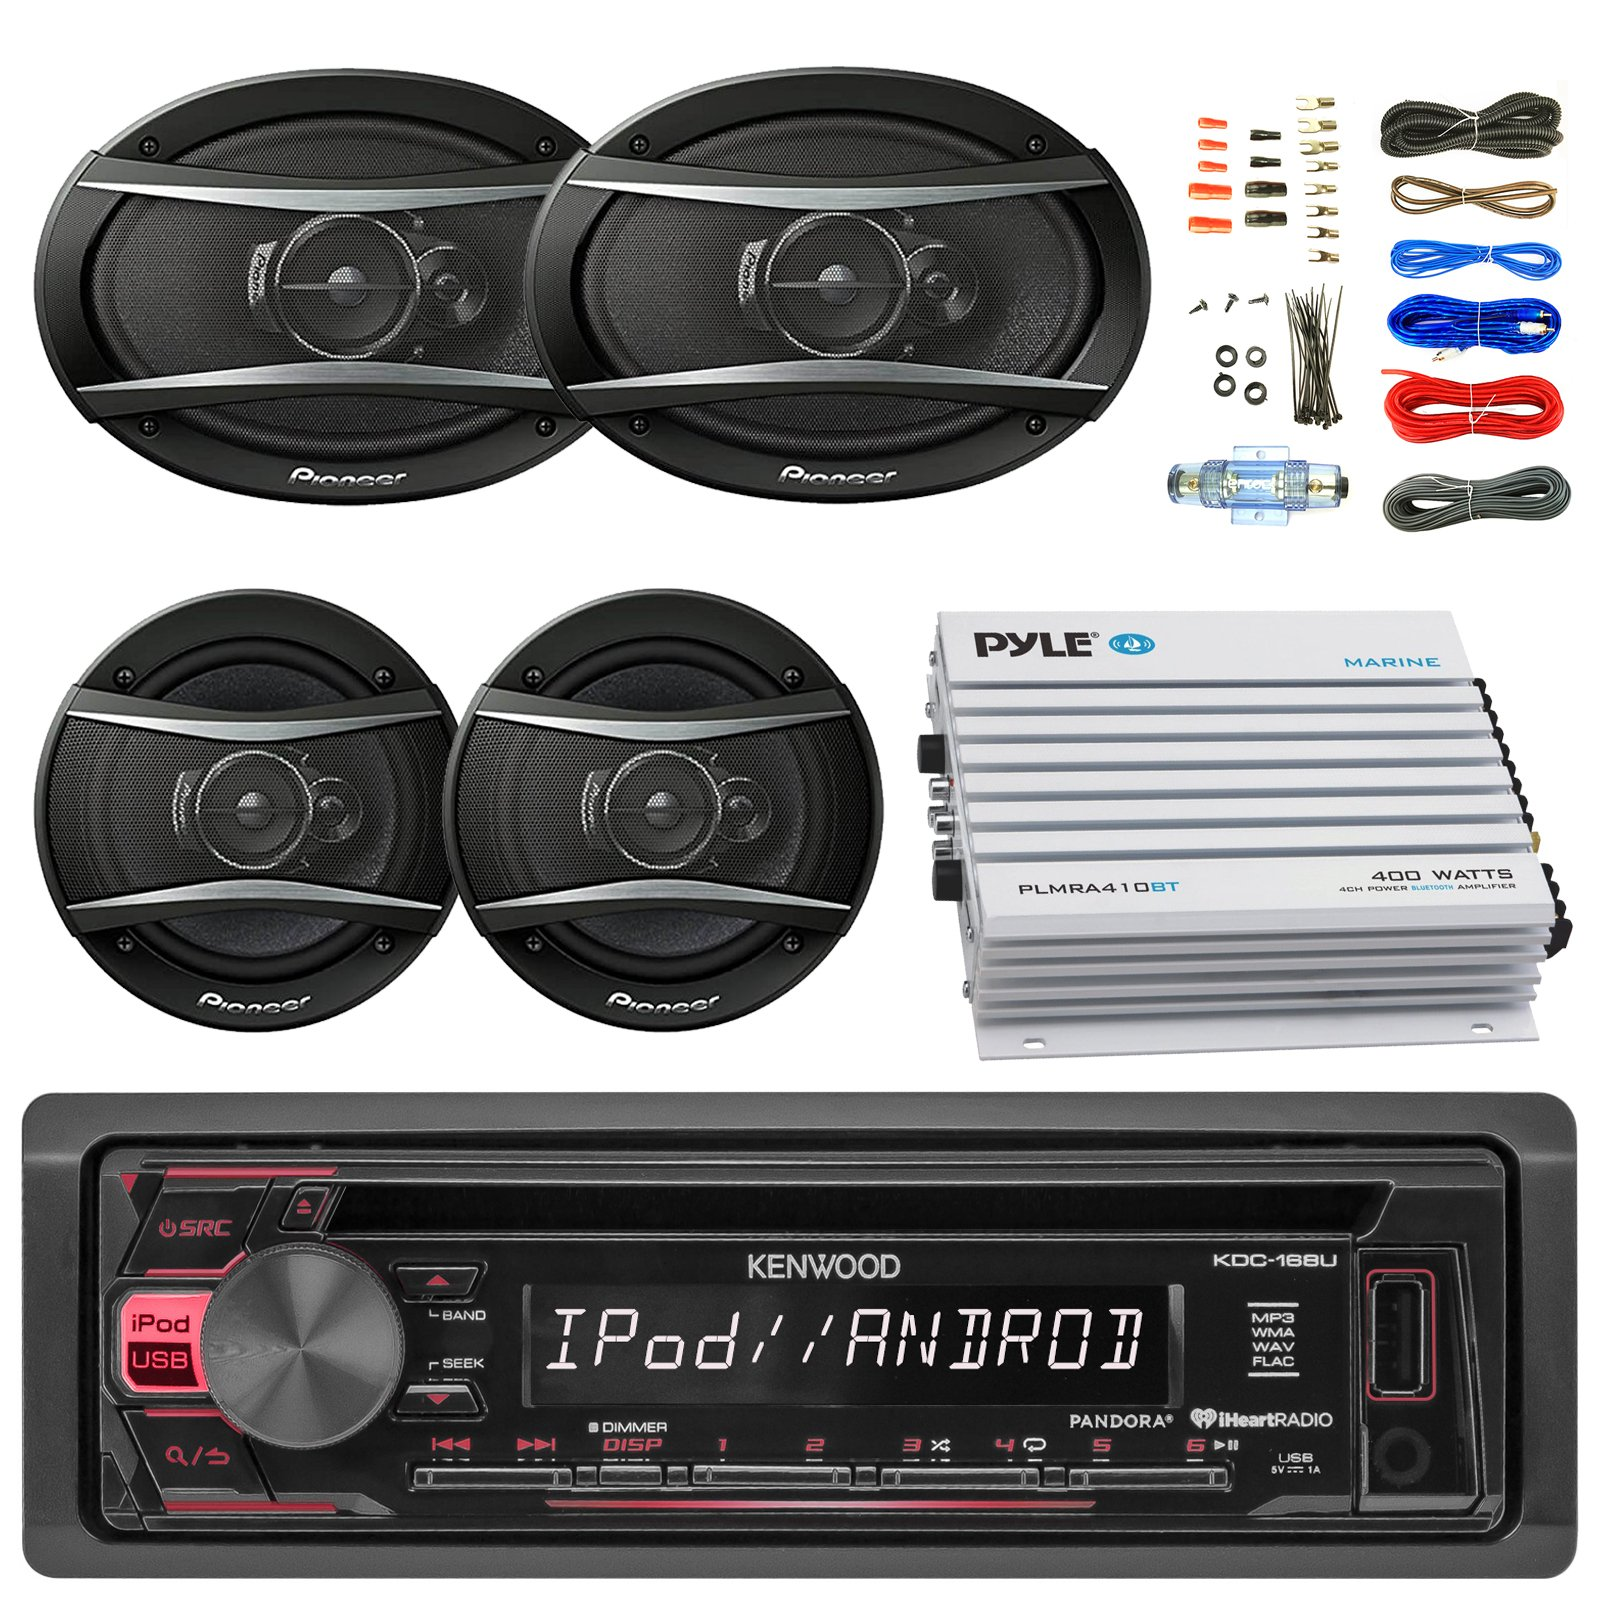 Kenwood KDC168U Car Radio USB AUX CD Player Receiver - Bundle With 2x TSA1676R 6.5'' 3-Way Car Audio Speakers - 2x 6.5''-6.75'' 4-Way Stereo Speaker + 4-Channel Amplifier + Amp Kit